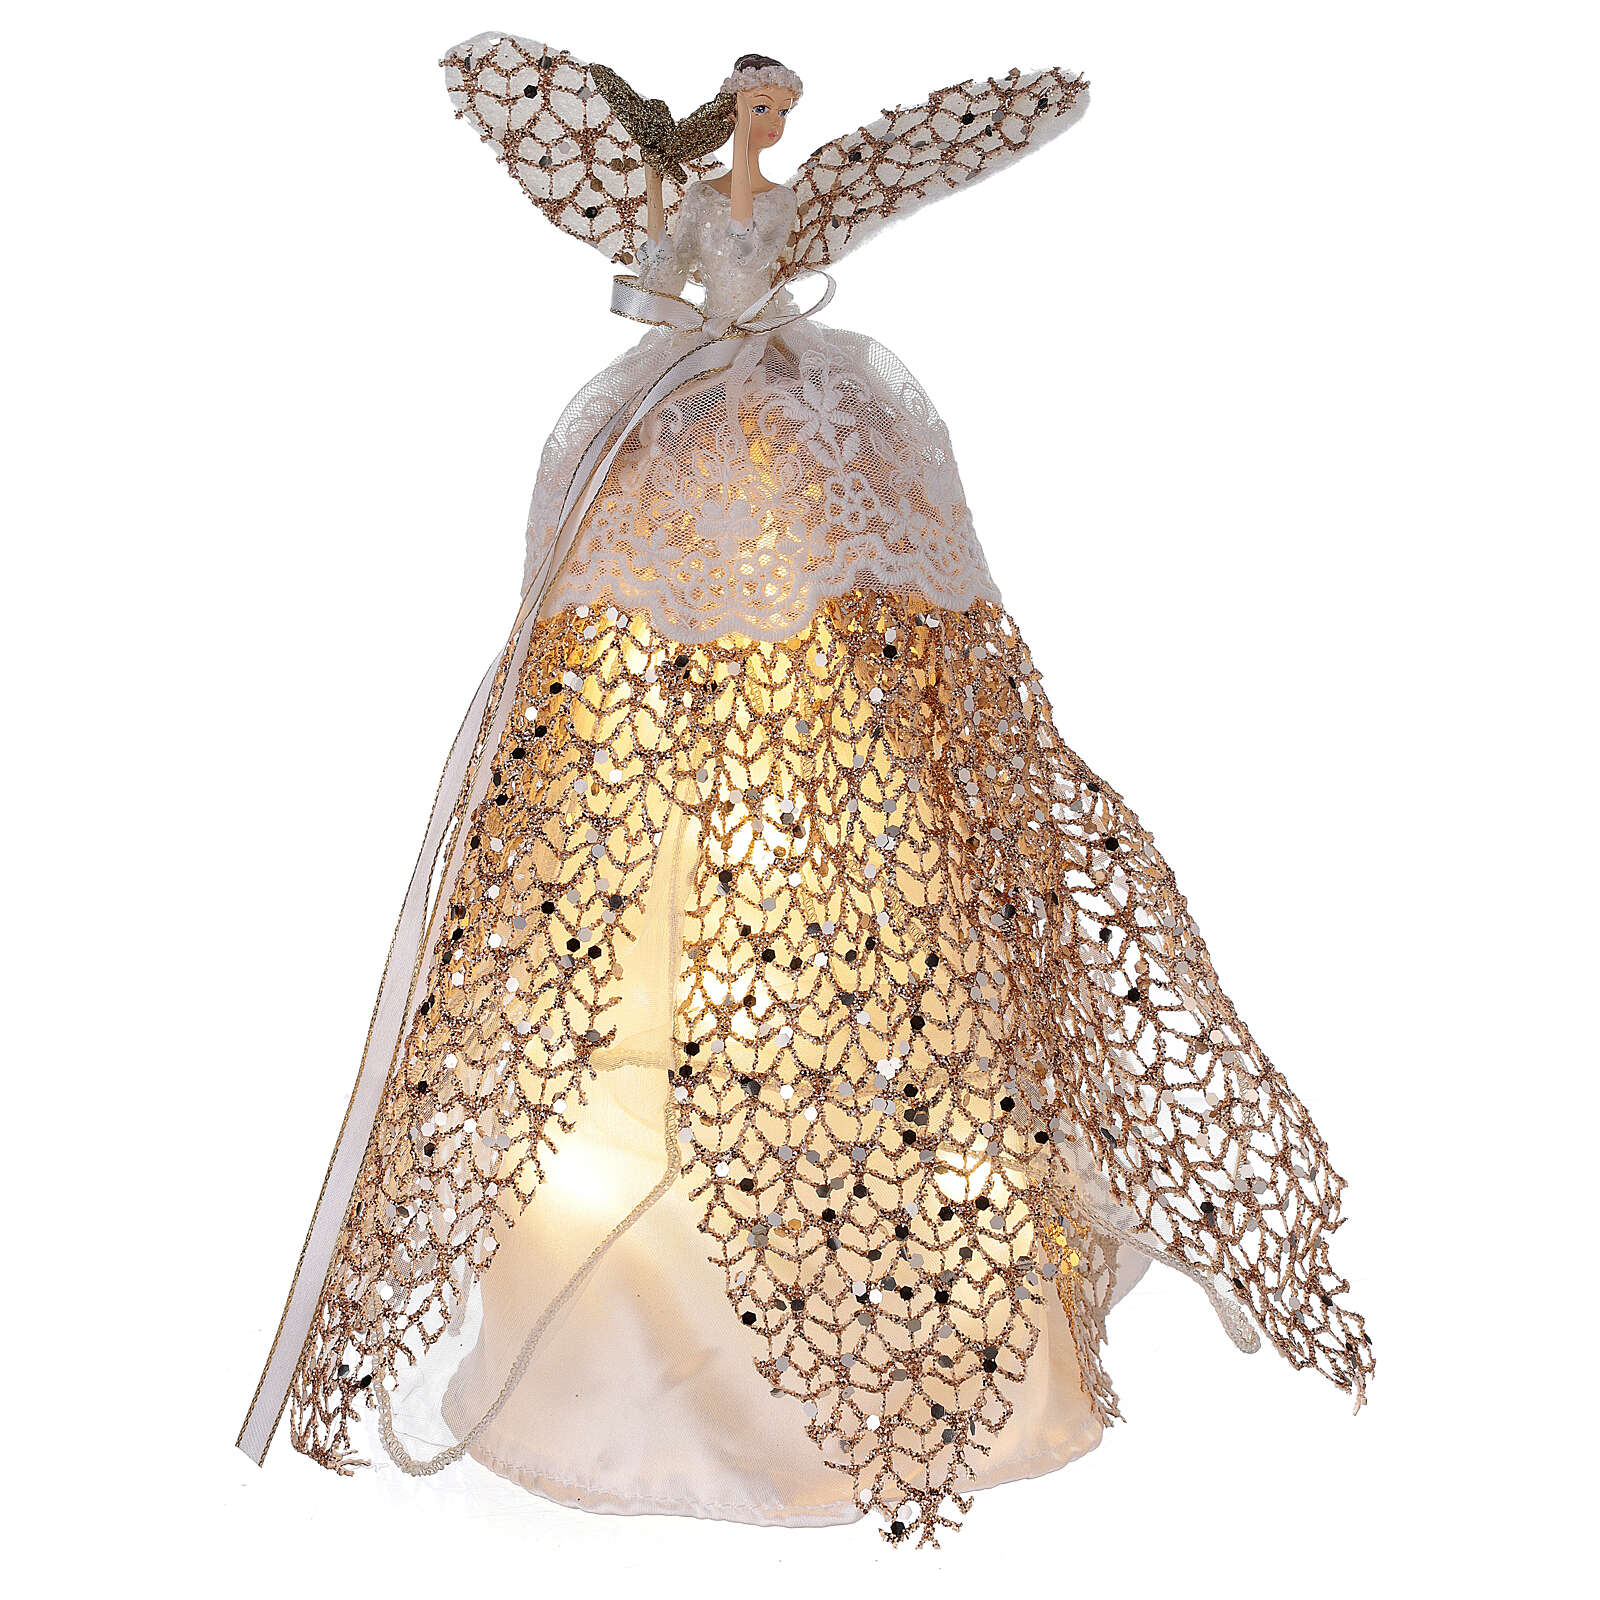 Angel tree topper in resin 27 cm illuminated with LED 3